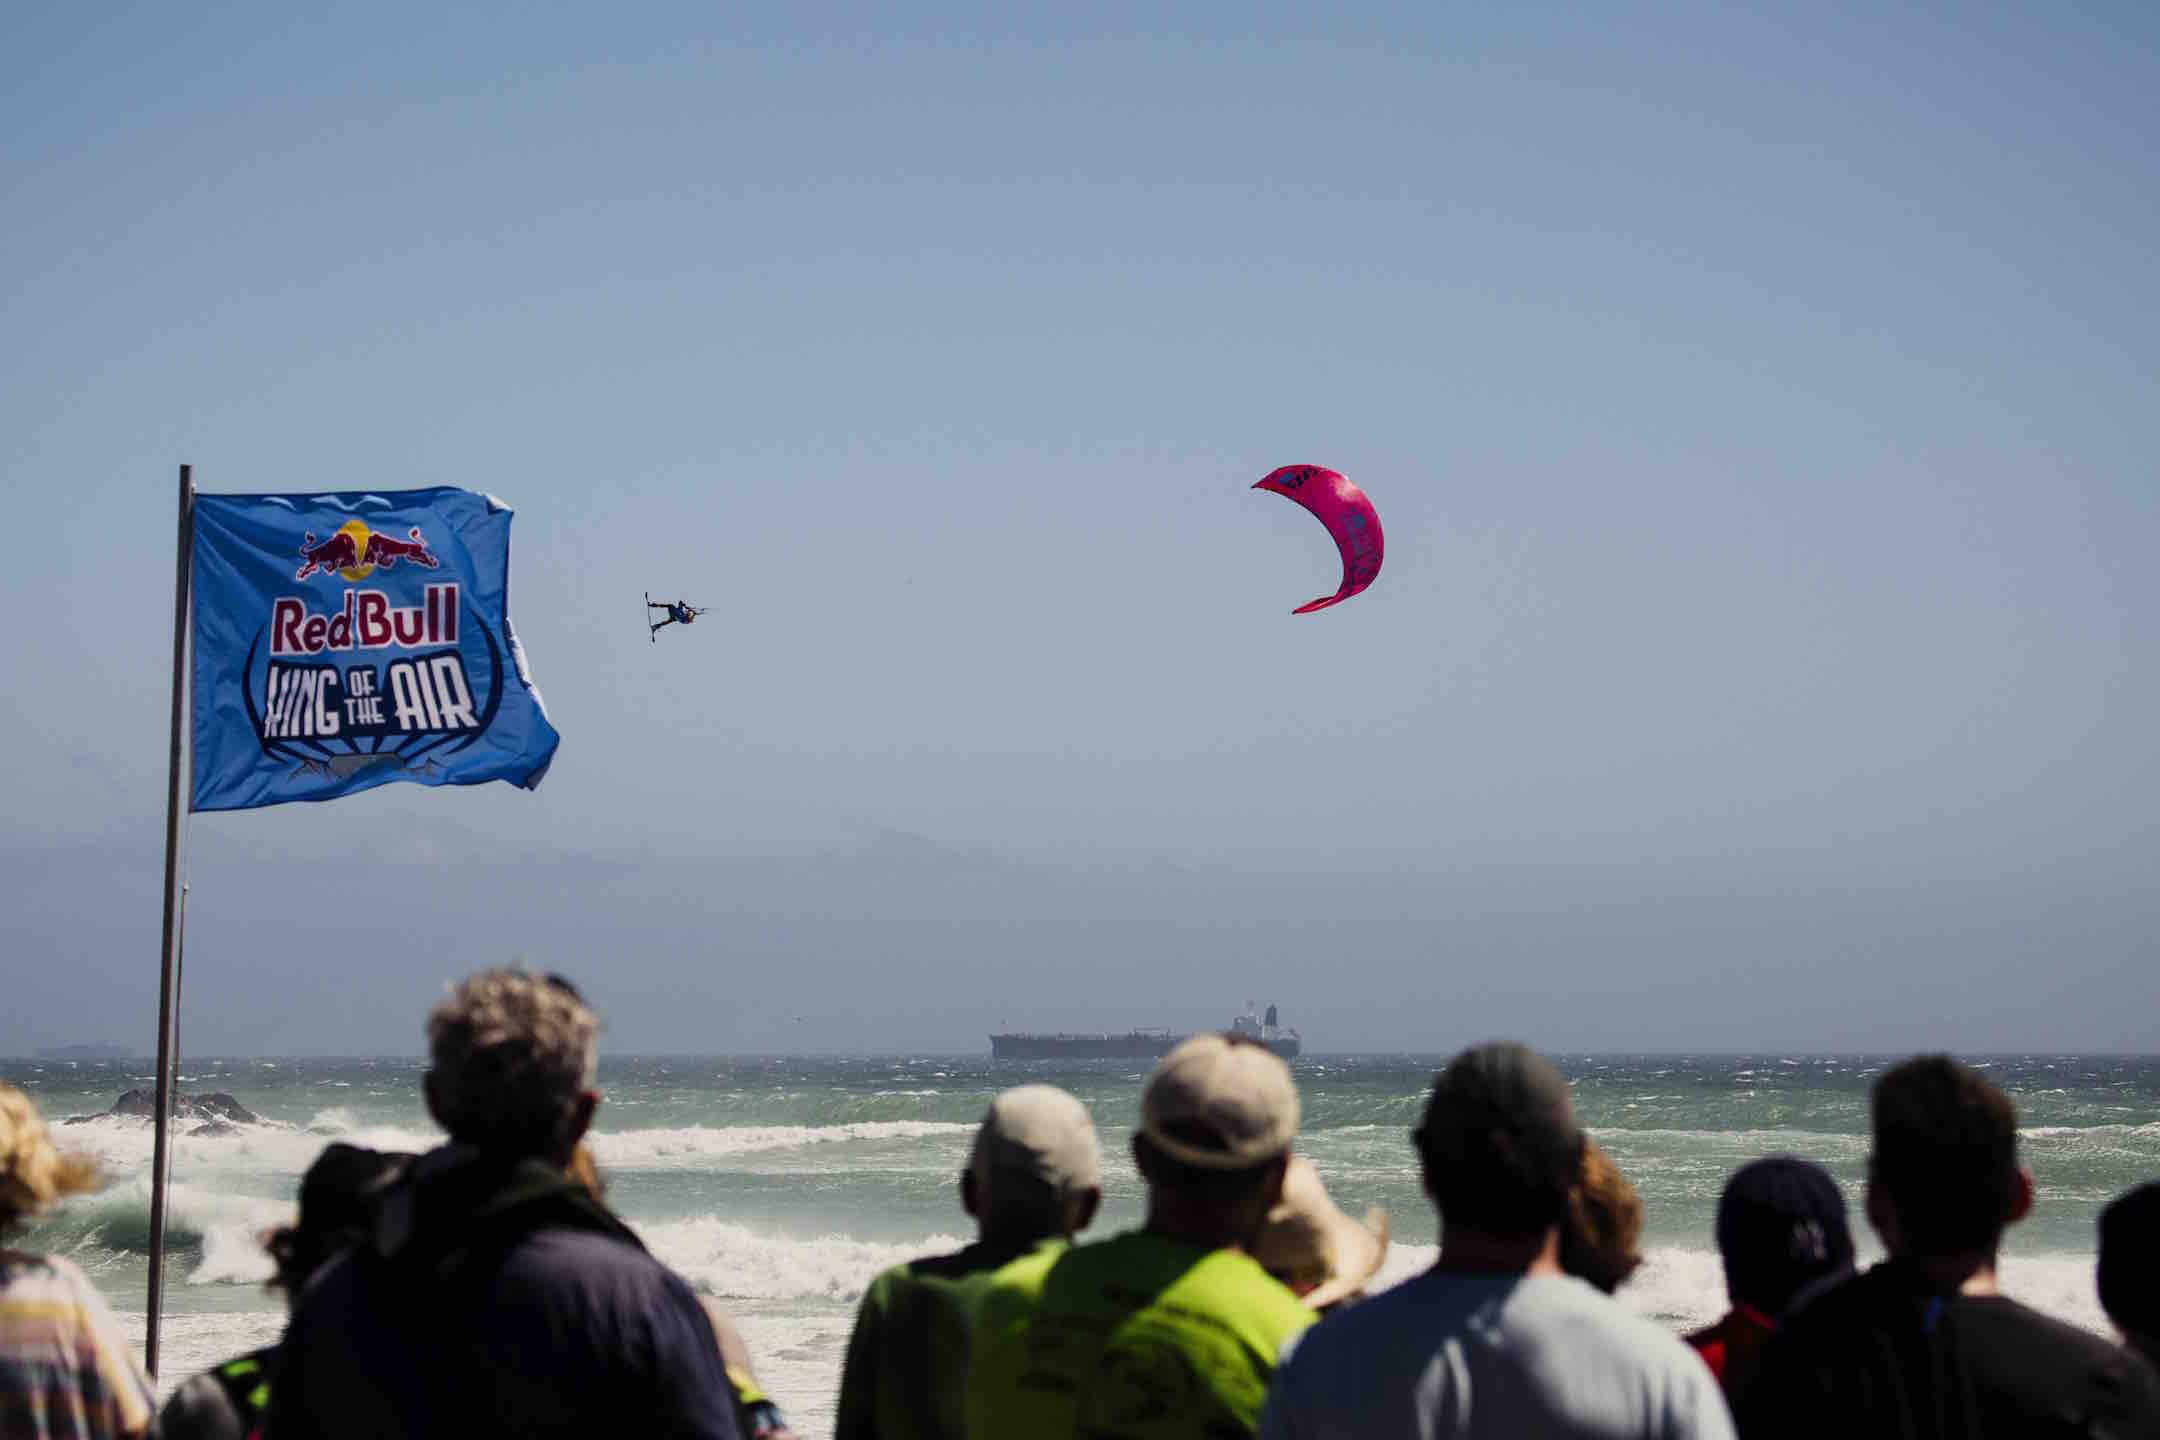 RedBull King of the Air - Photo by Bianca Asher